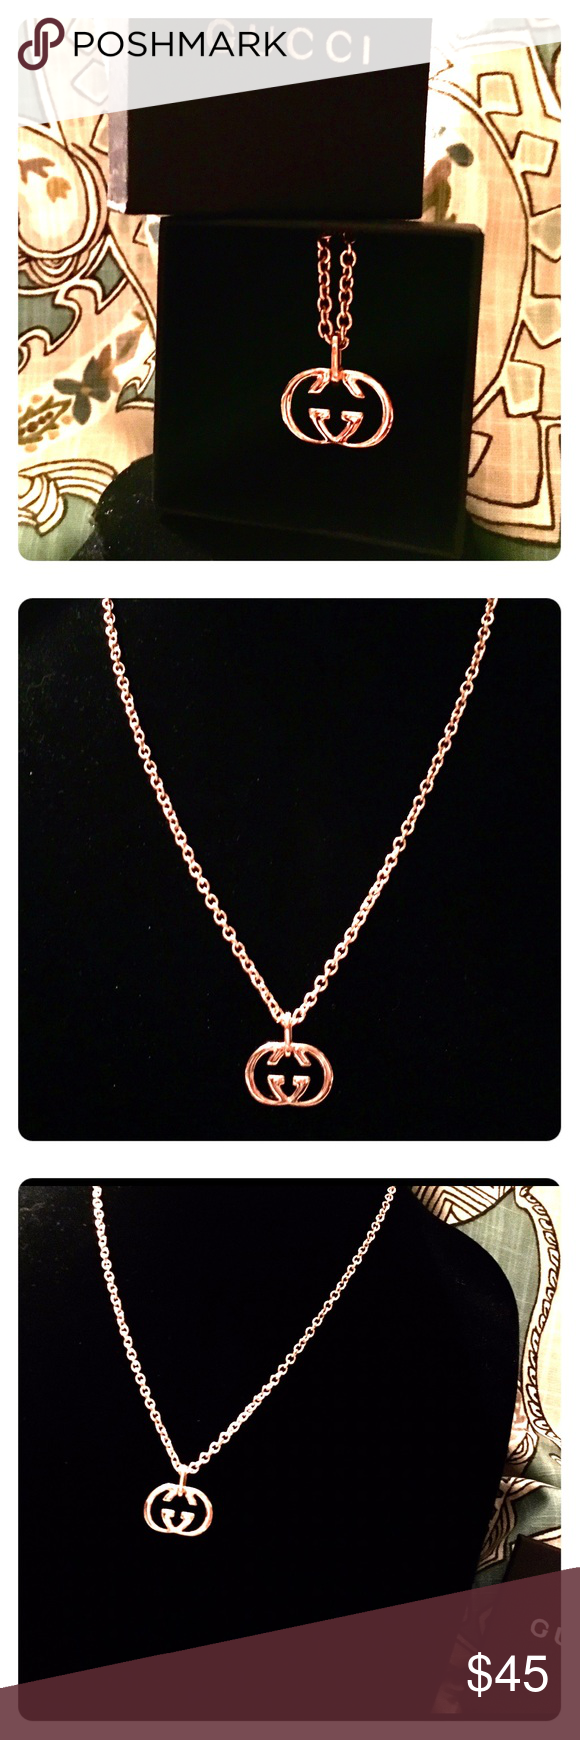 """Rosegold designer inspired logo pendant necklace Costume fashion jewelry inspired by famous designer. Comes w gift box (shown in photo). Pendant size is equal to the size of a quarter. Chain is 30-35"""". Jewelry Necklaces"""